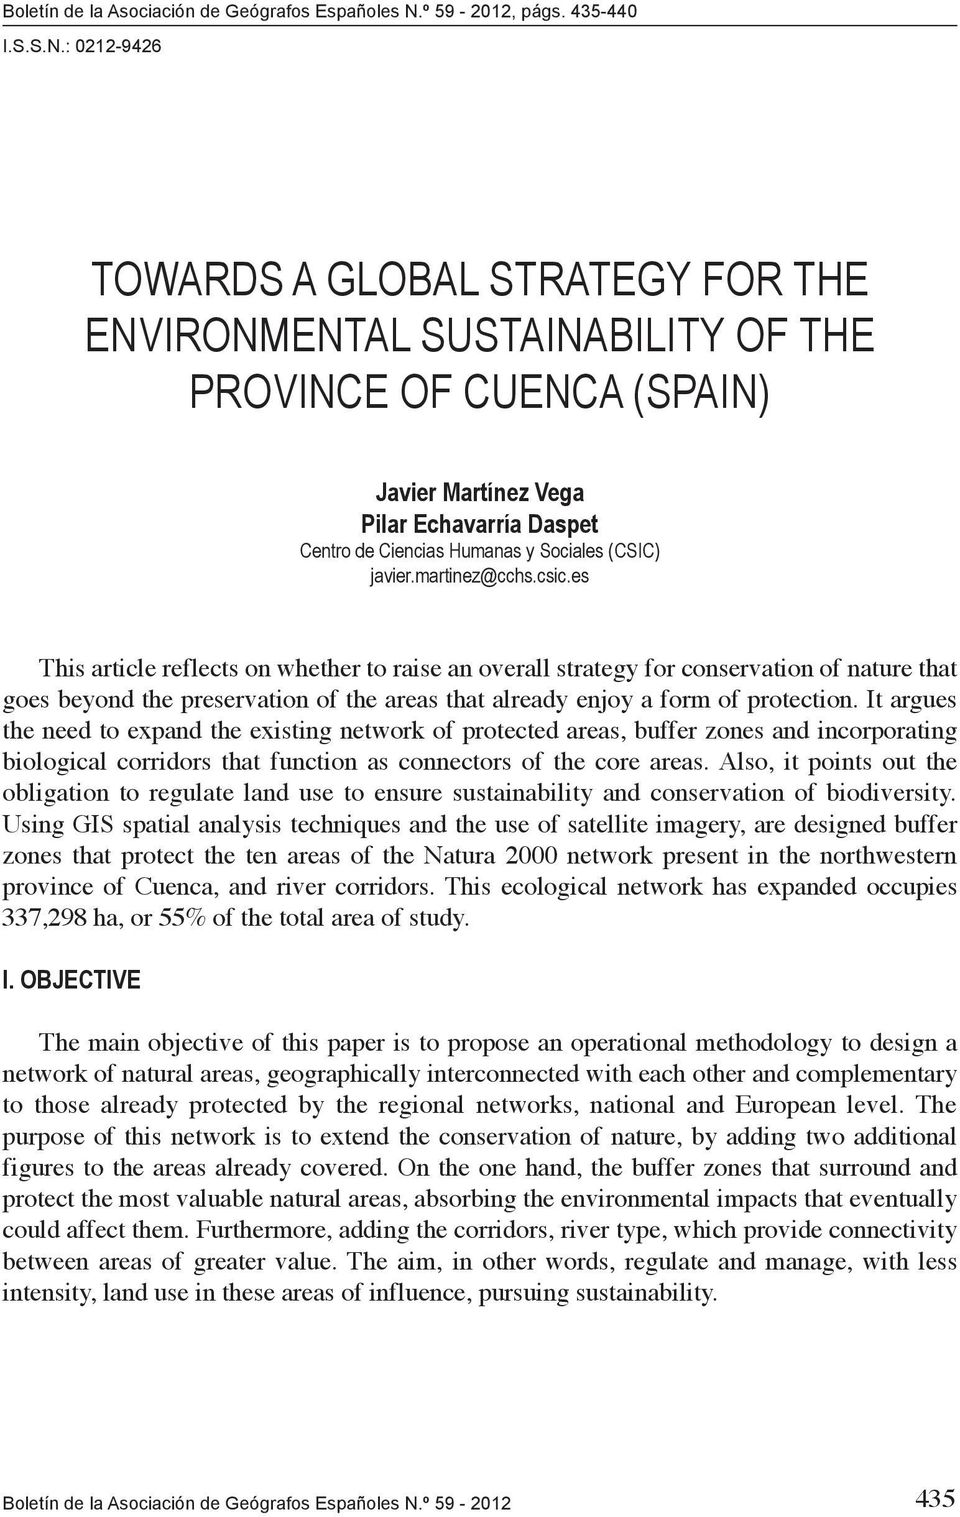 : 0212-9426 TOWARDS A GLOBAL STRATEGY FOR THE ENVIRONMENTAL SUSTAINABILITY OF THE PROVINCE OF CUENCA (SPAIN) Javier Martínez Vega Pilar Echavarría Daspet Centro de Ciencias Humanas y Sociales (CSIC)